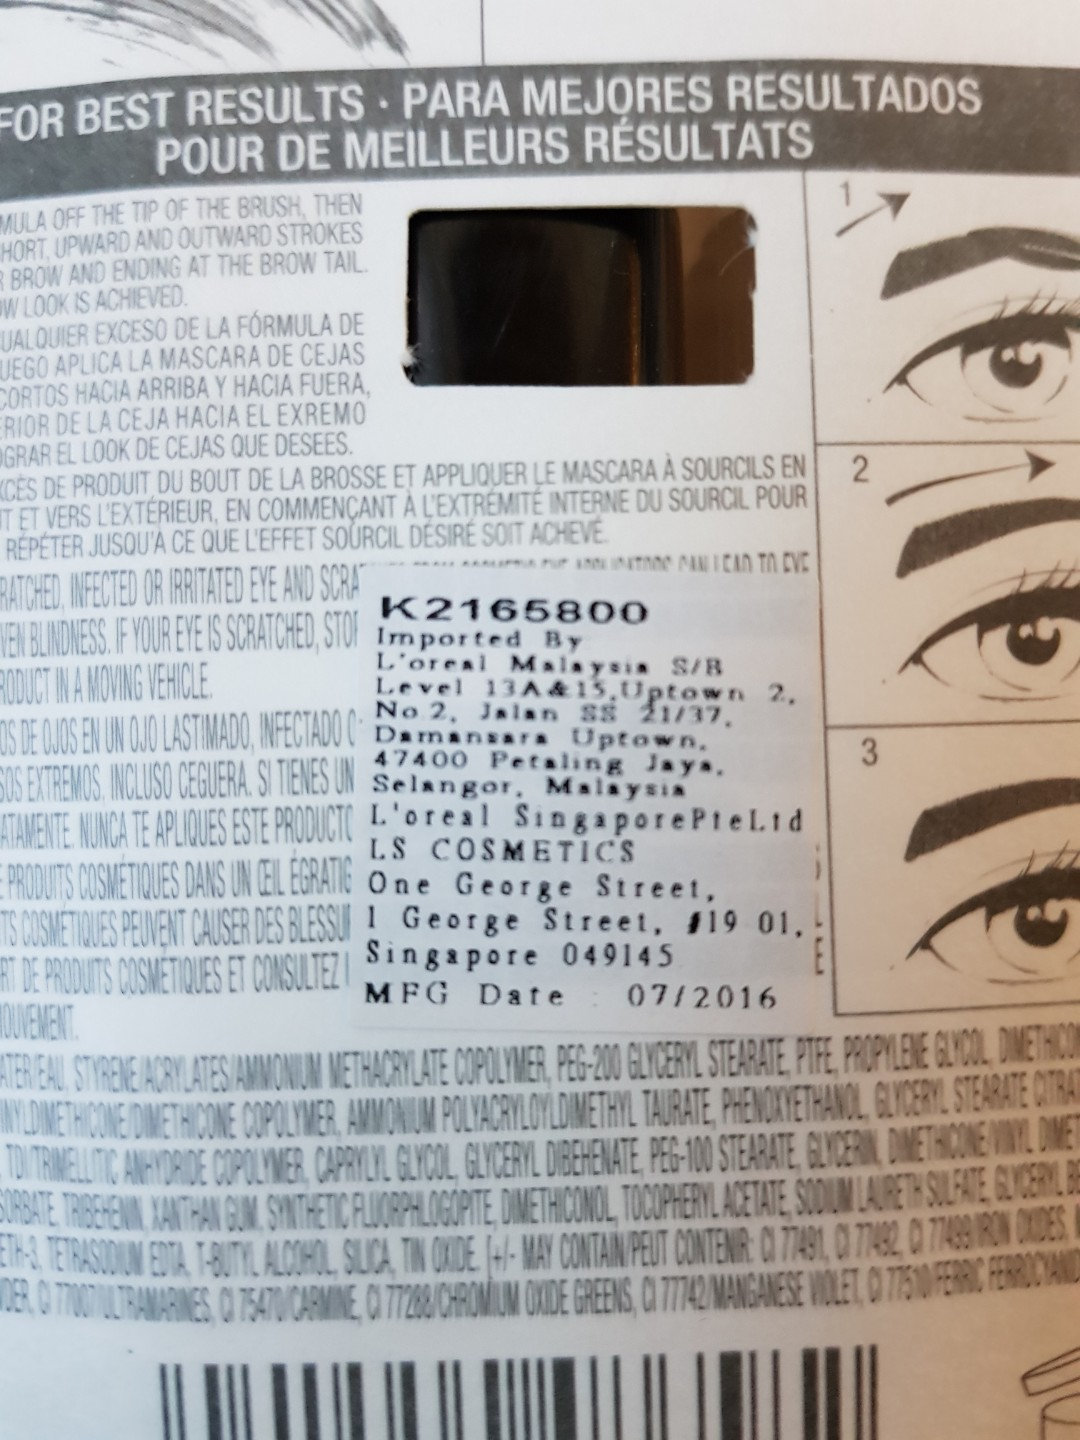 65bc3a542b2 Maybeline brow precise Mascara, Health & Beauty, Makeup on Carousell